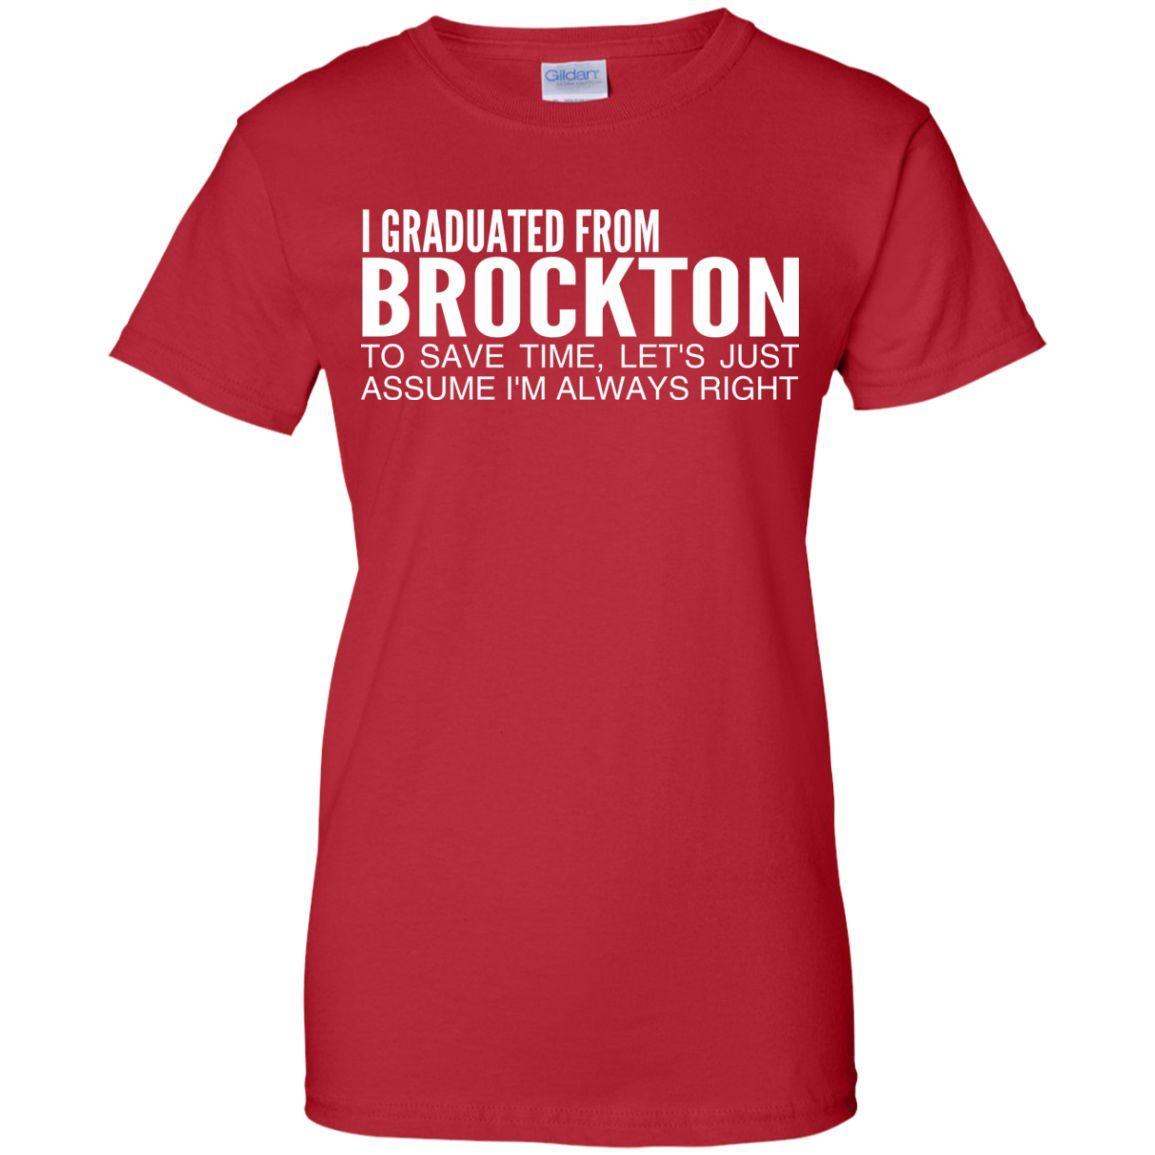 I Graduated From Brockton To Save Time Lets Just Assume Im Always Right Ladies Tees